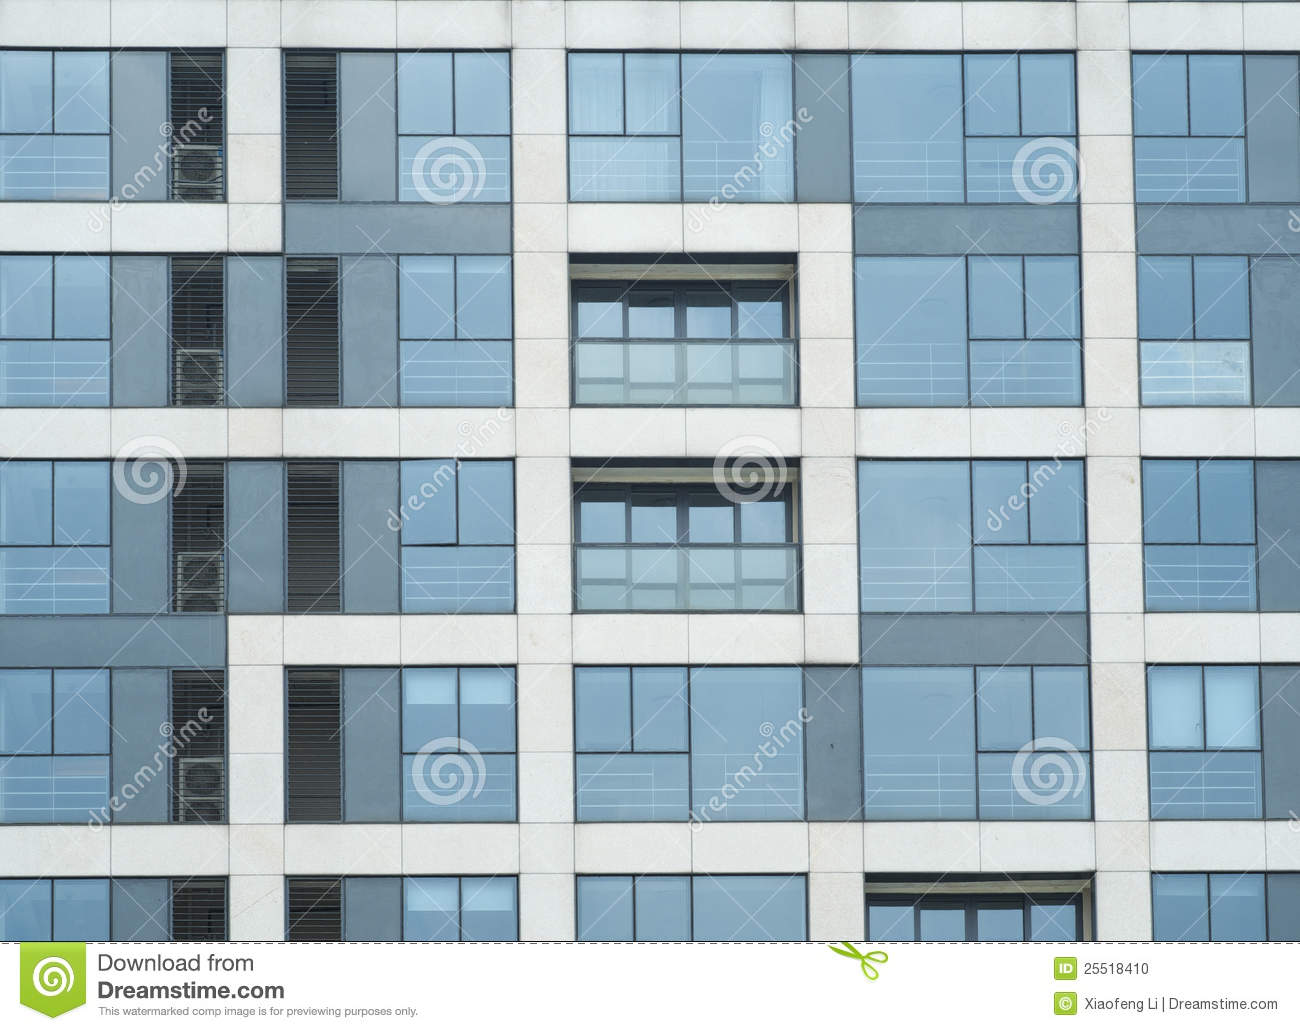 Graceful designs of residential buildings windows stock for Residential window design